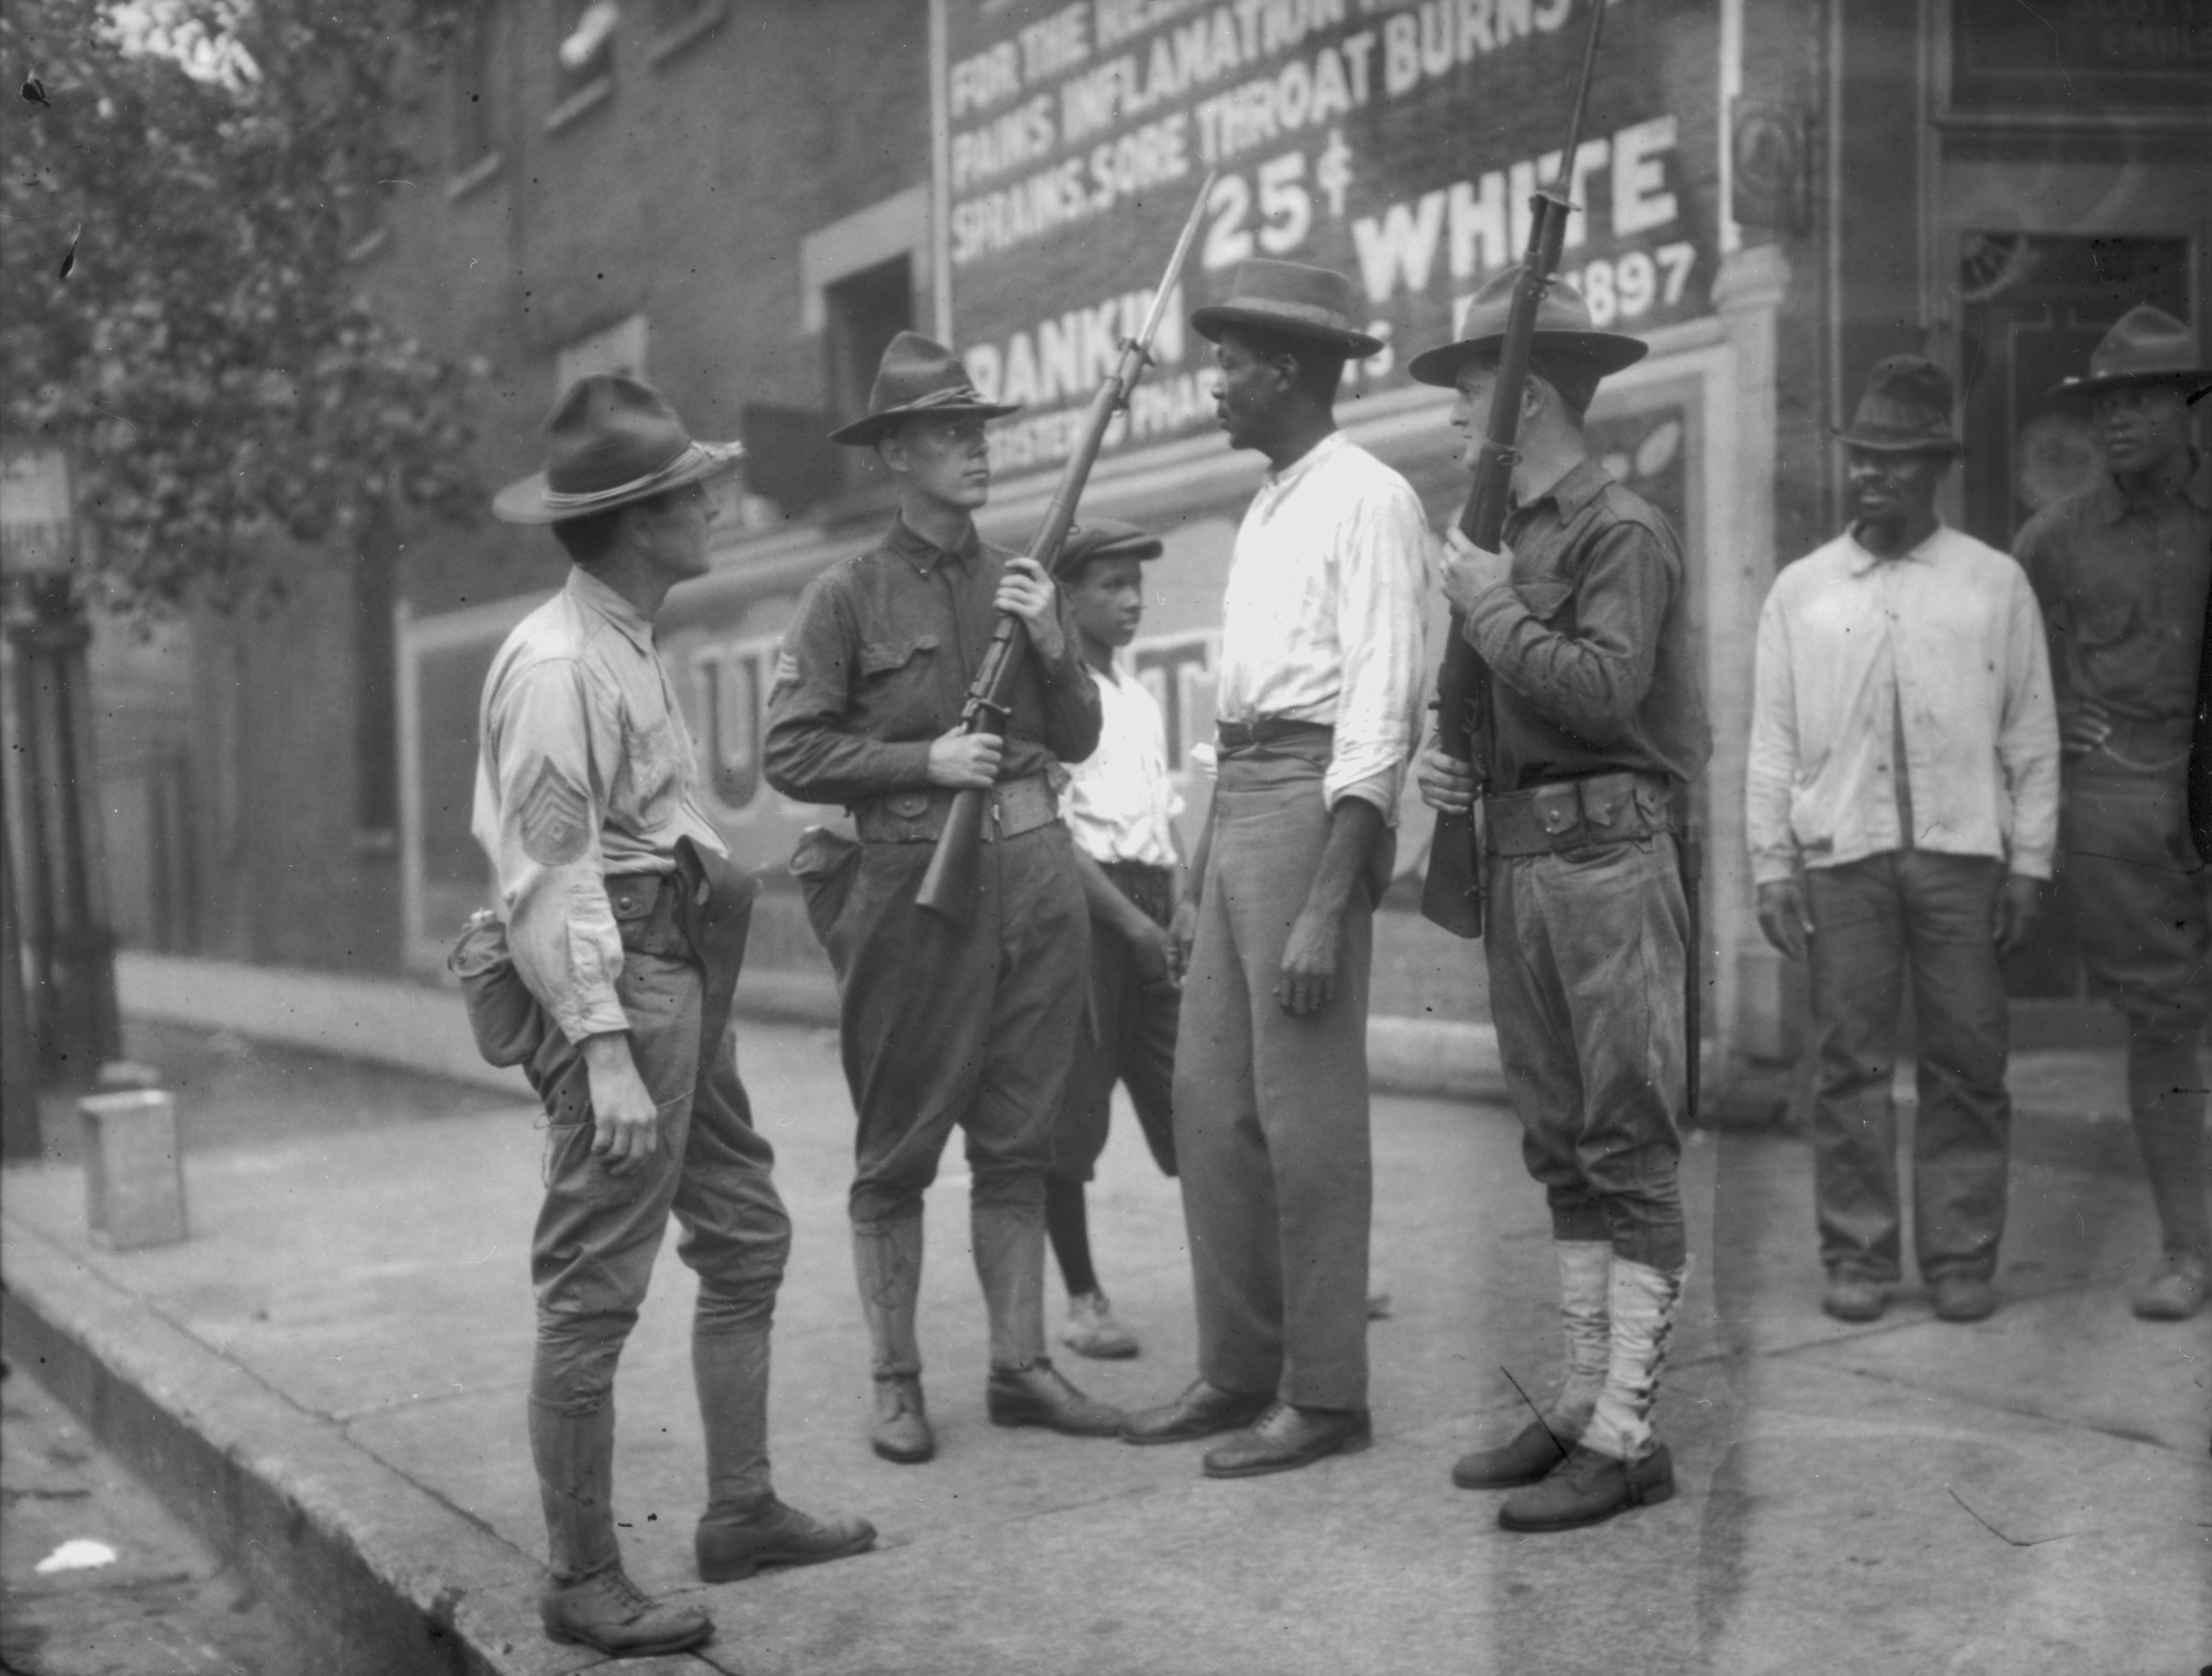 National Guardsmen During The Chicago Race Riots